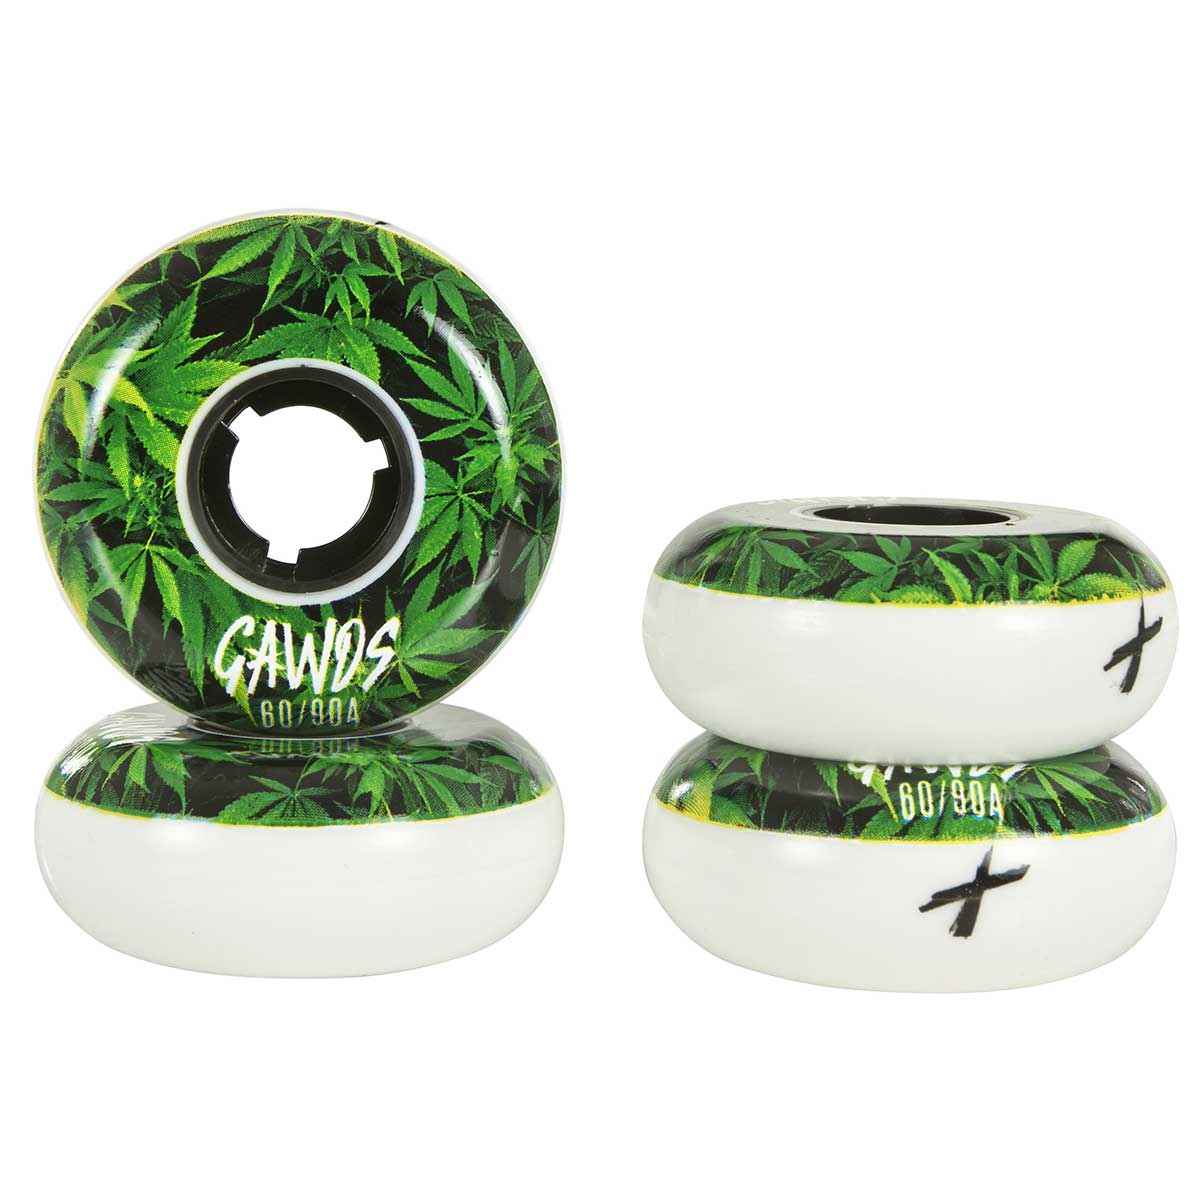 GAWDS PRO TEAM WEED 60mm/90A